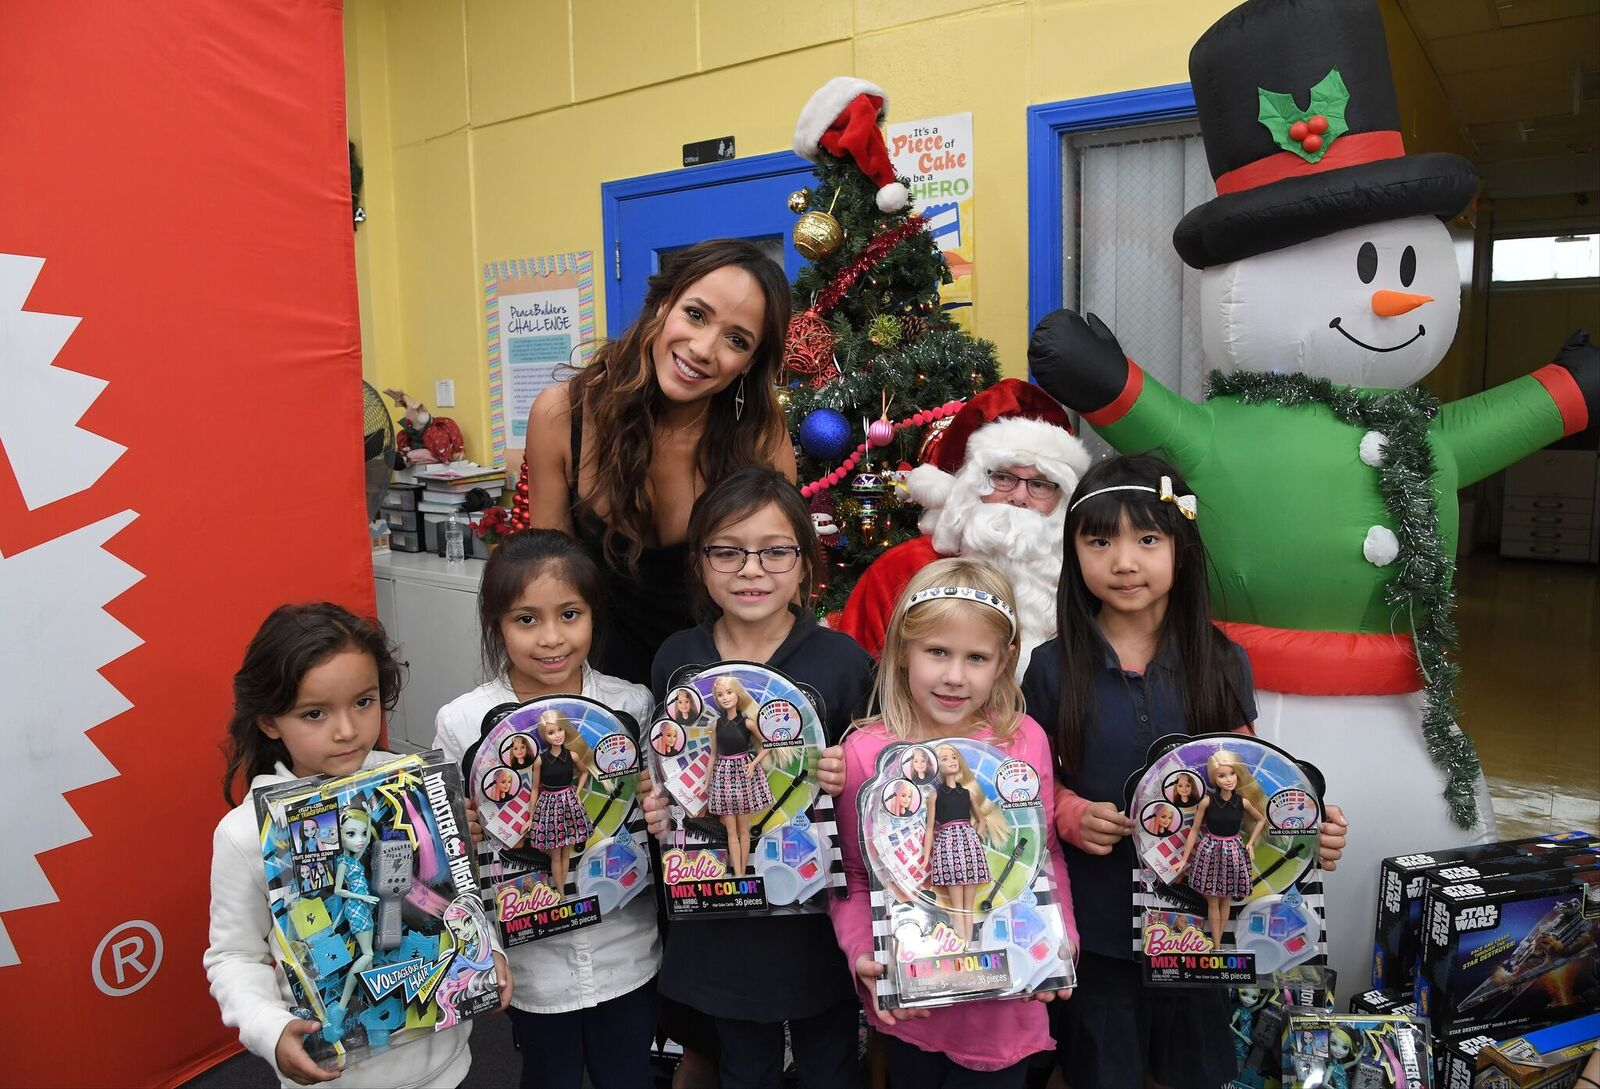 Dania Ramirez with kids at Boys & Girls Club of Burbank & Greater East Valley